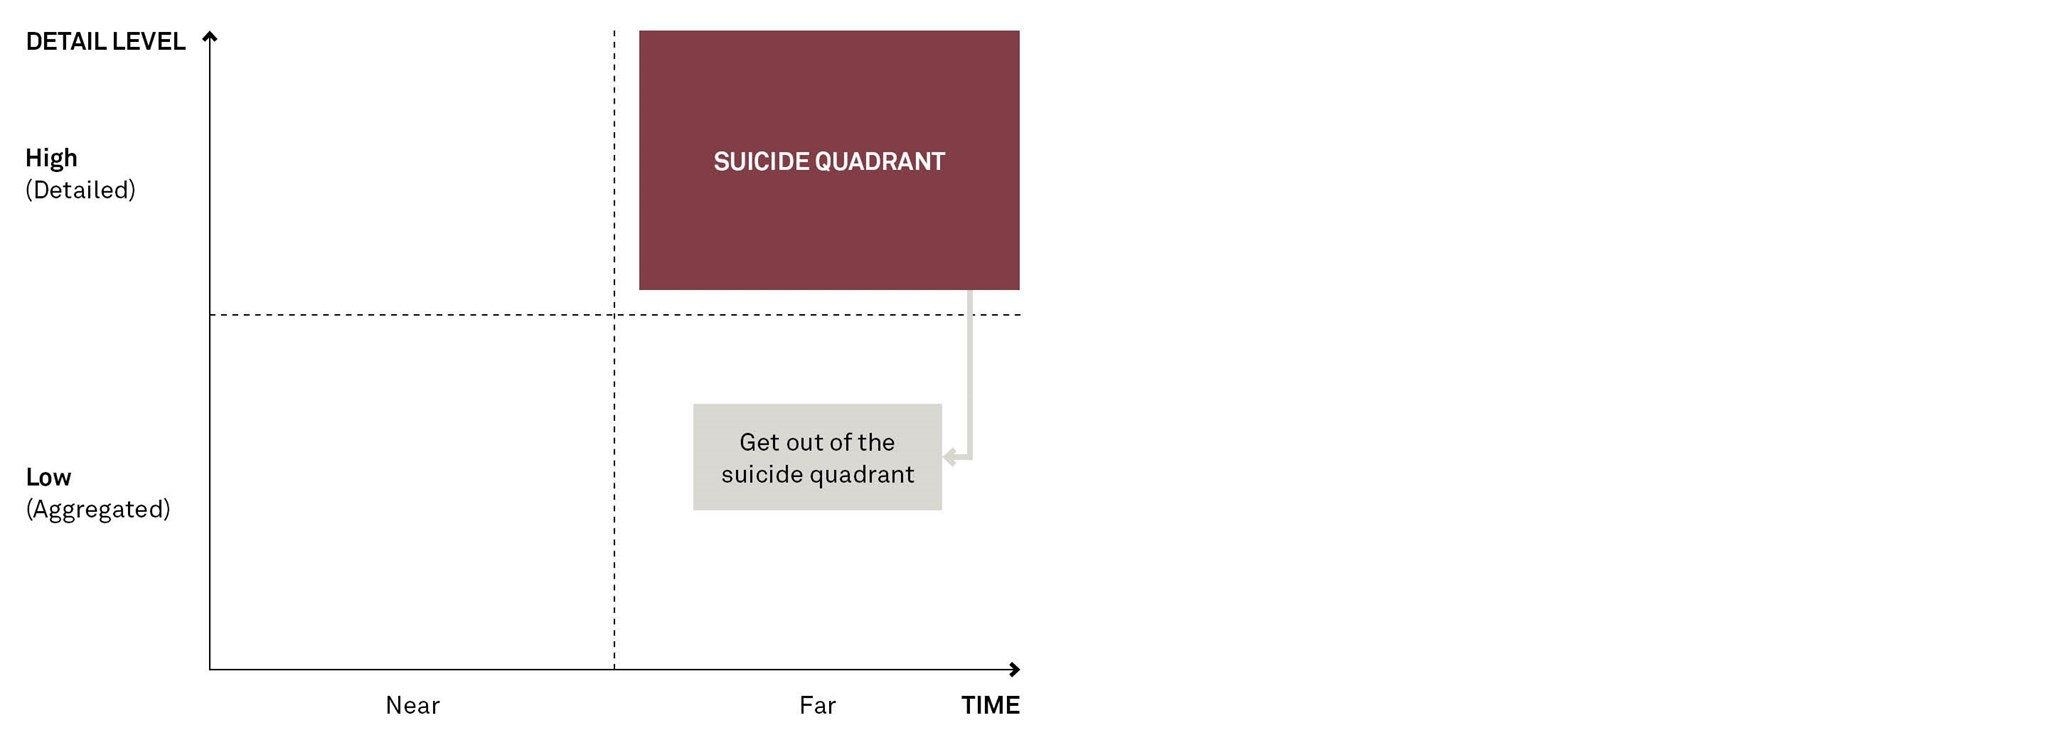 The suicide quadrant